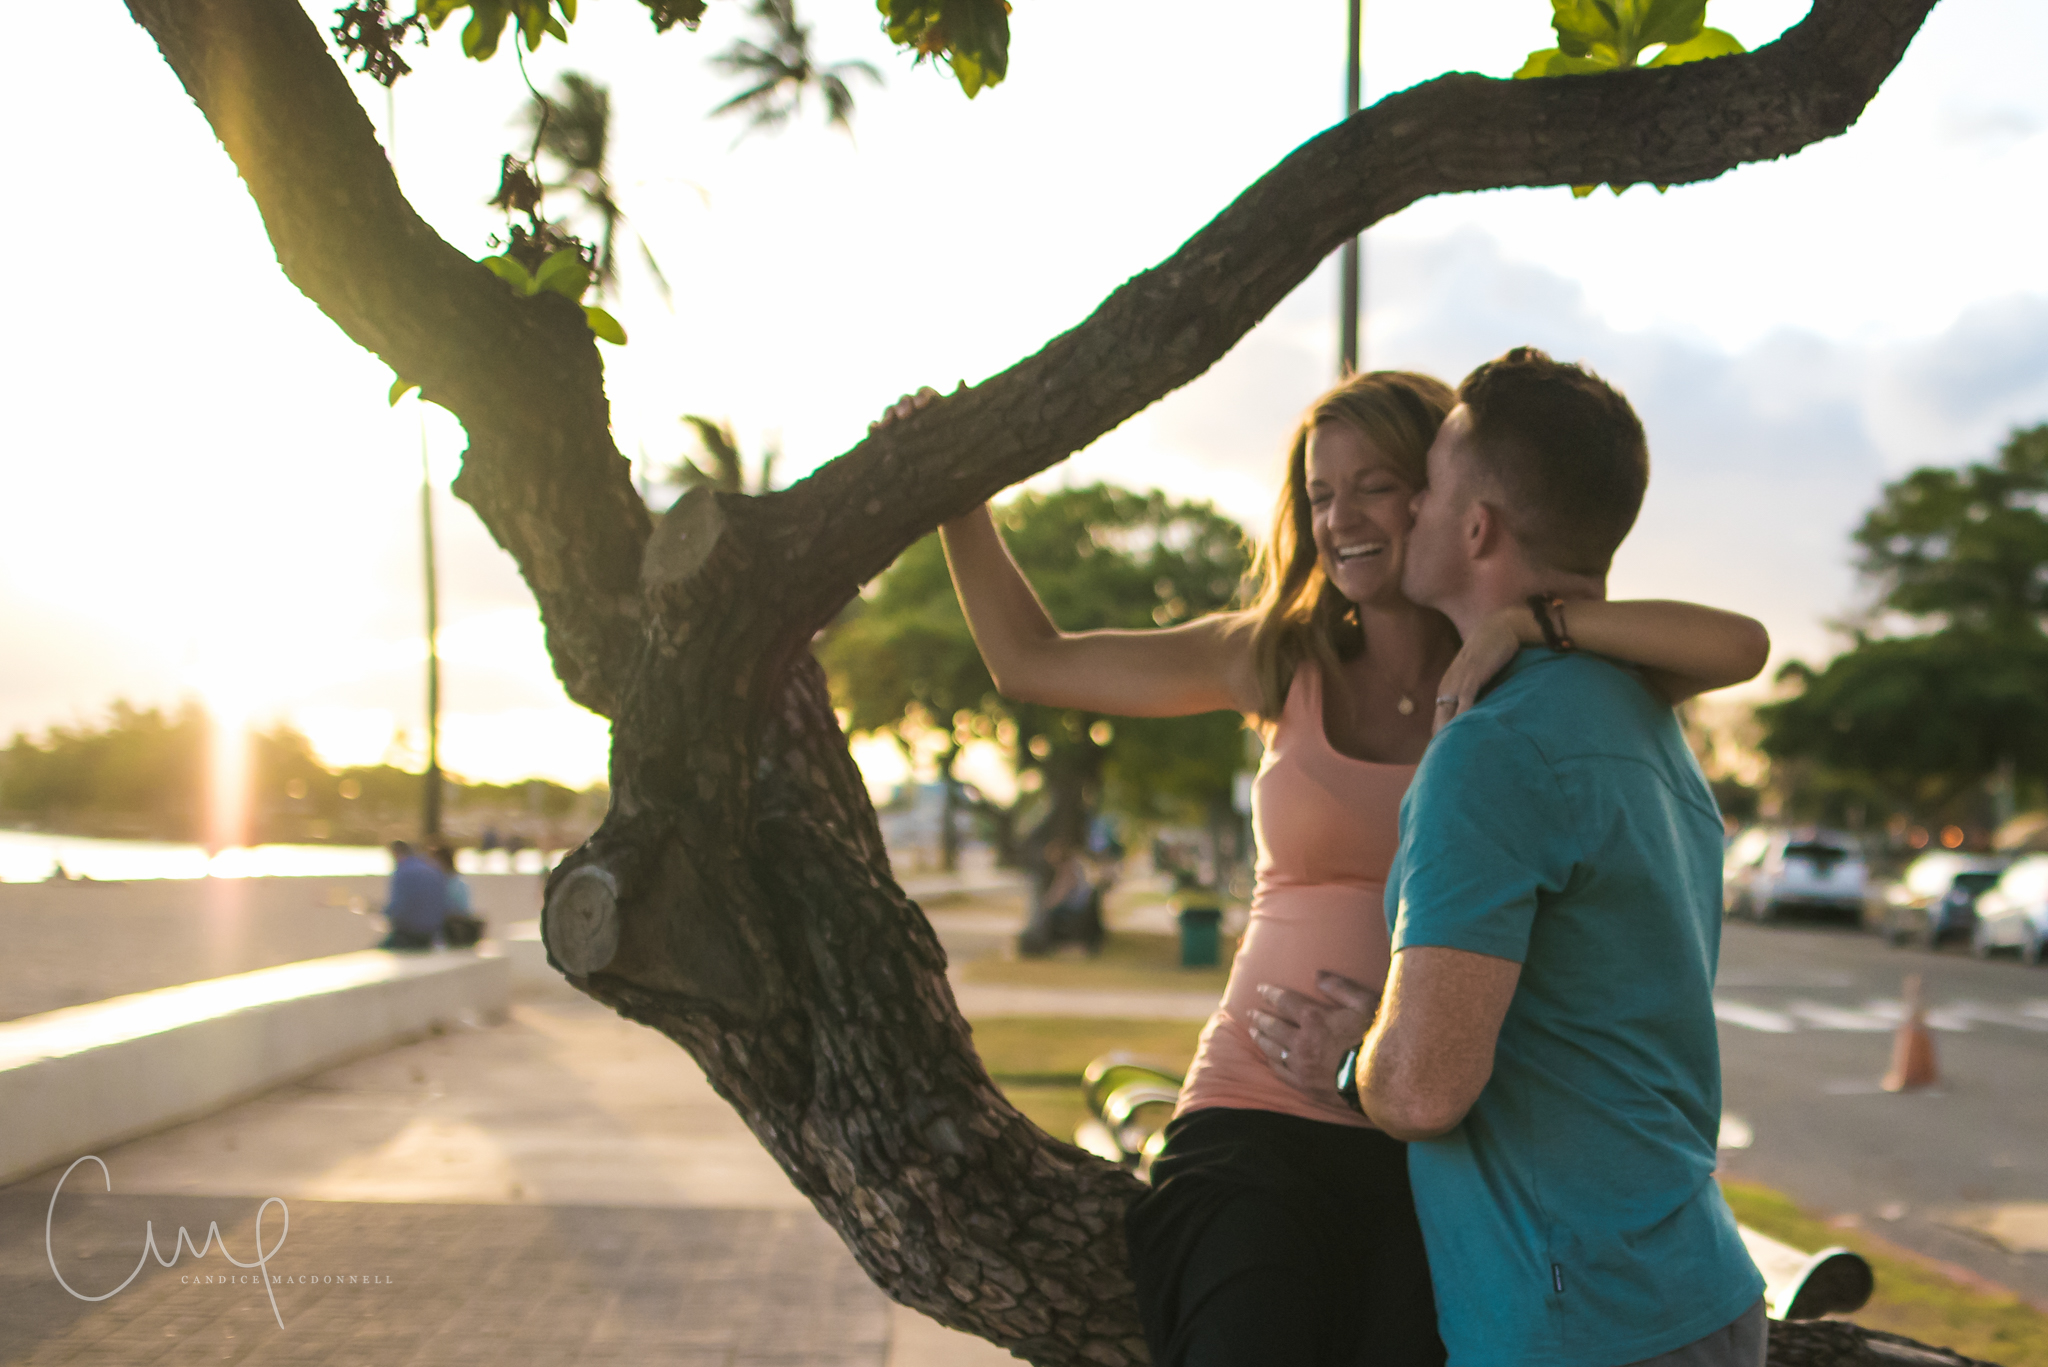 sitting in tree honolulu ala moana park maternity lifestyle photo sesion oahu hawaii photographer